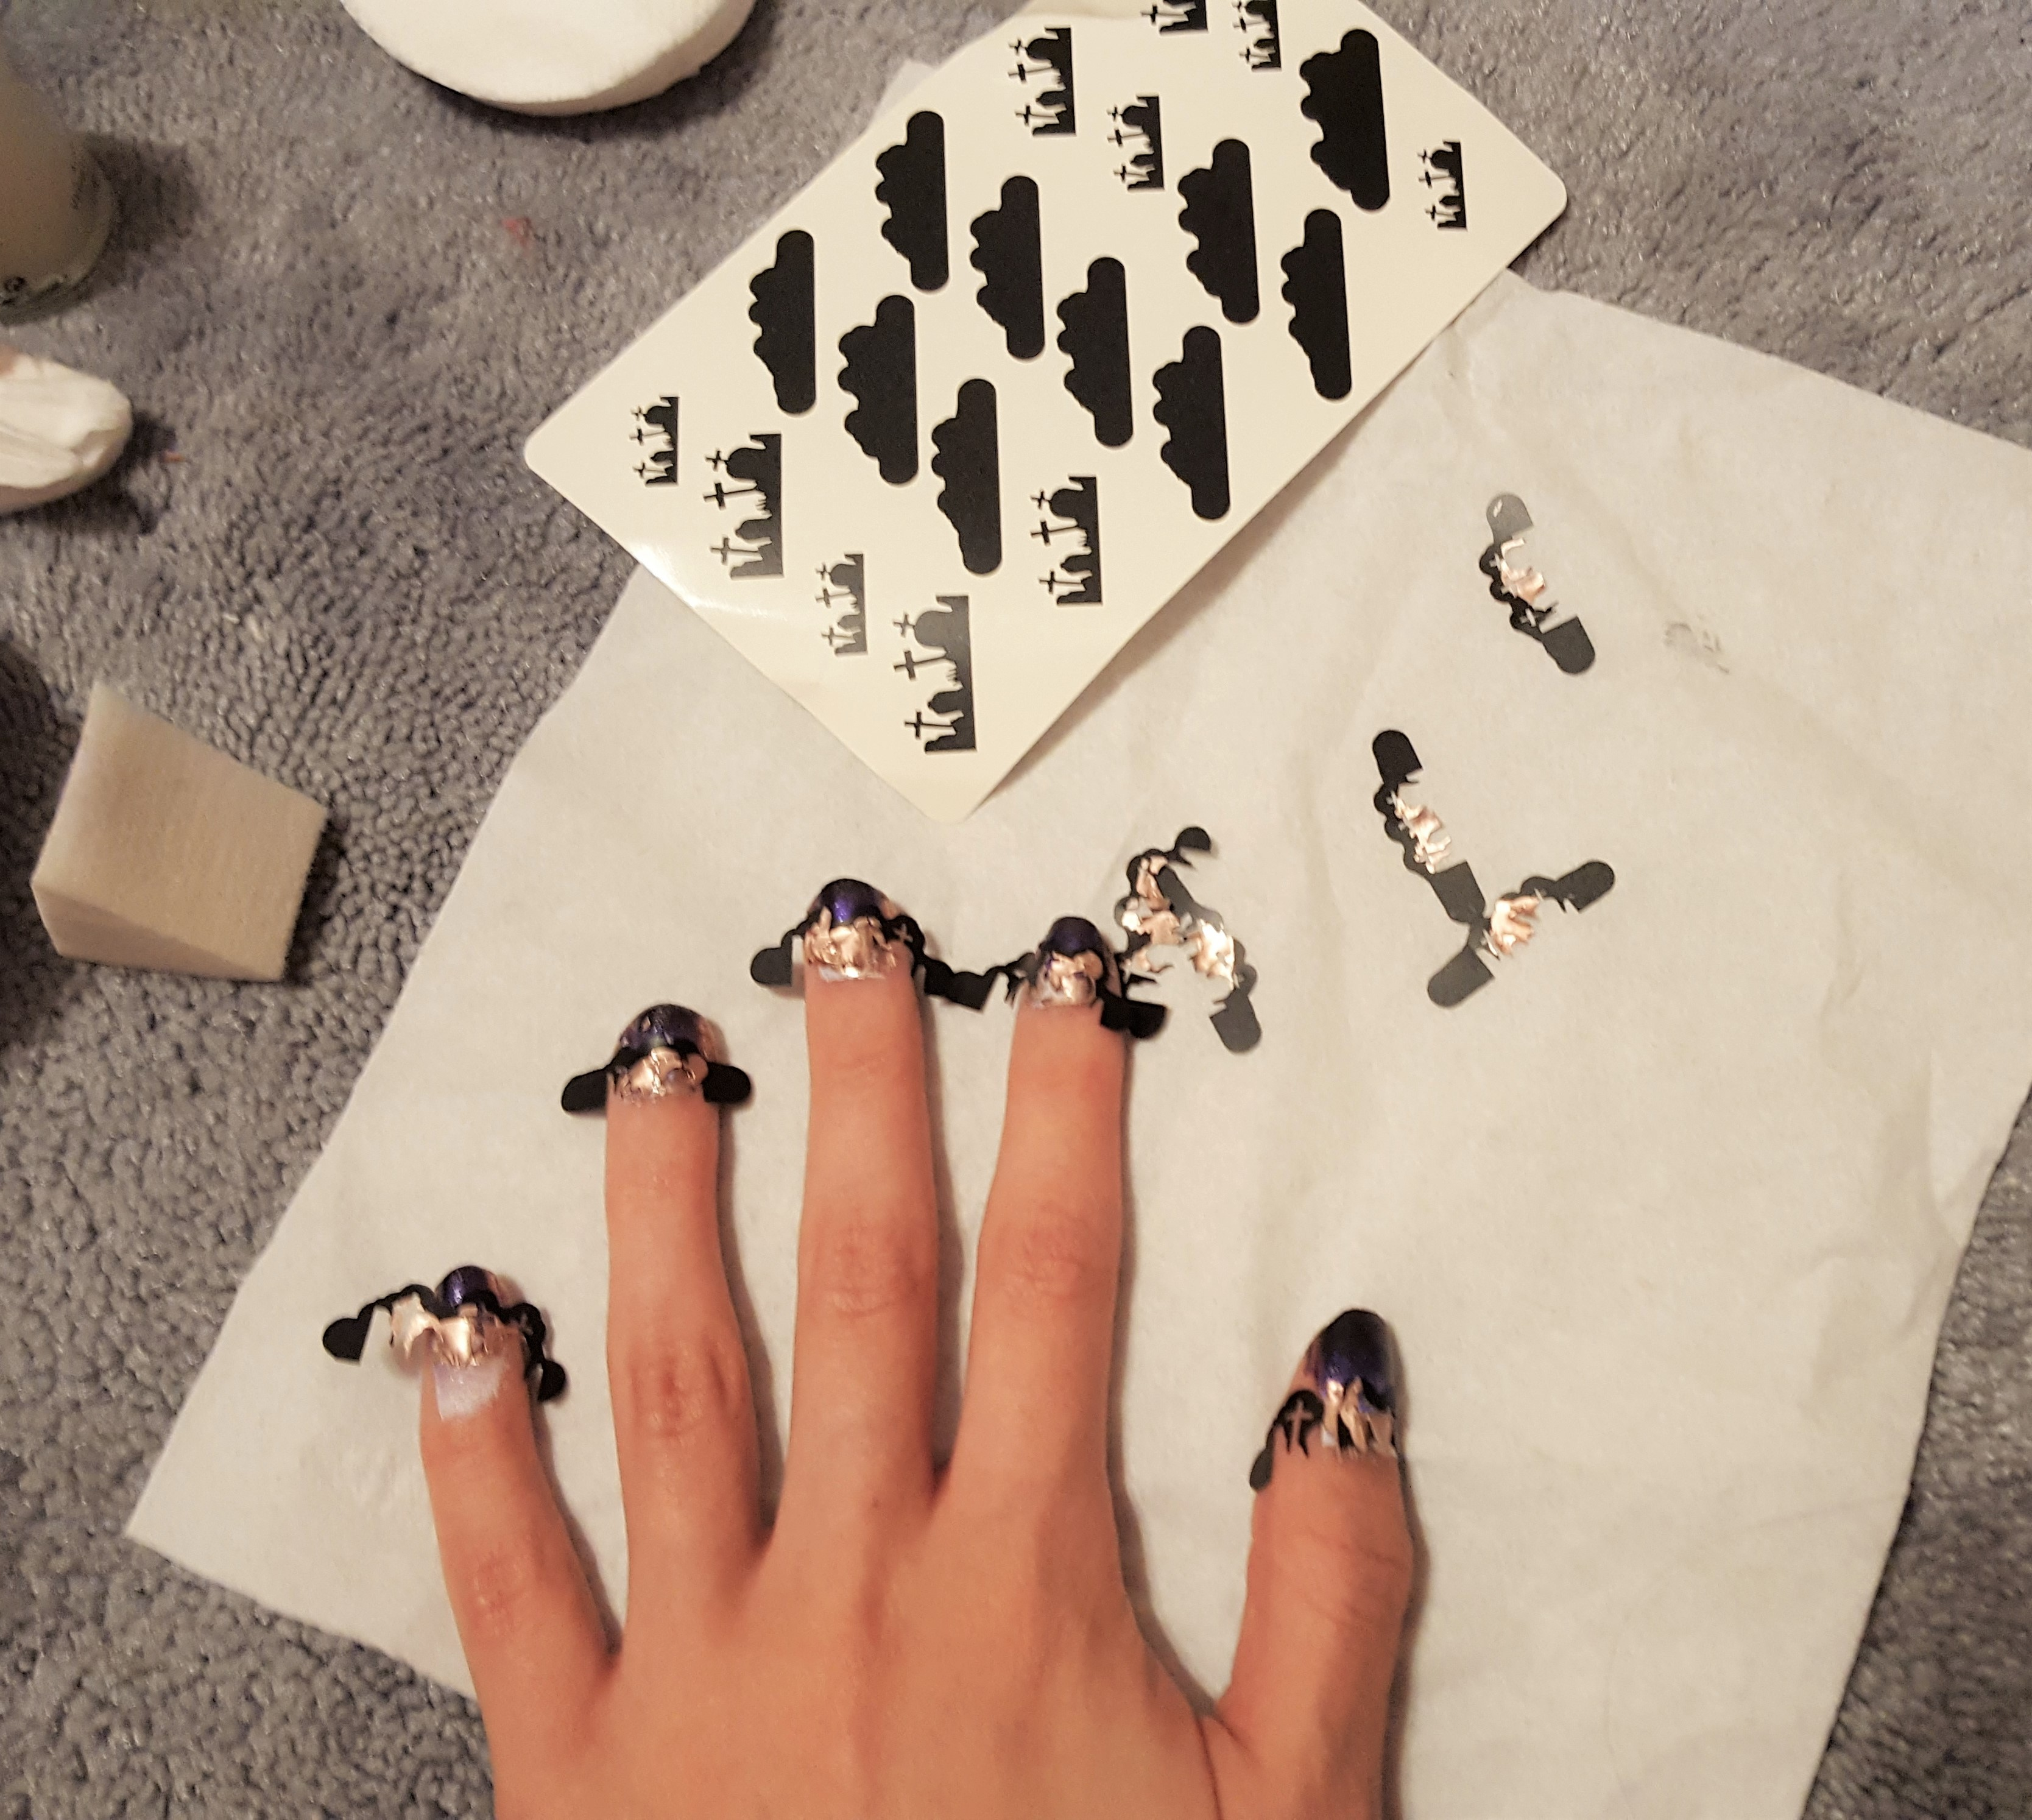 Nail polish games to play for free splendid wedding company nail polish games to play for free solutioingenieria Image collections